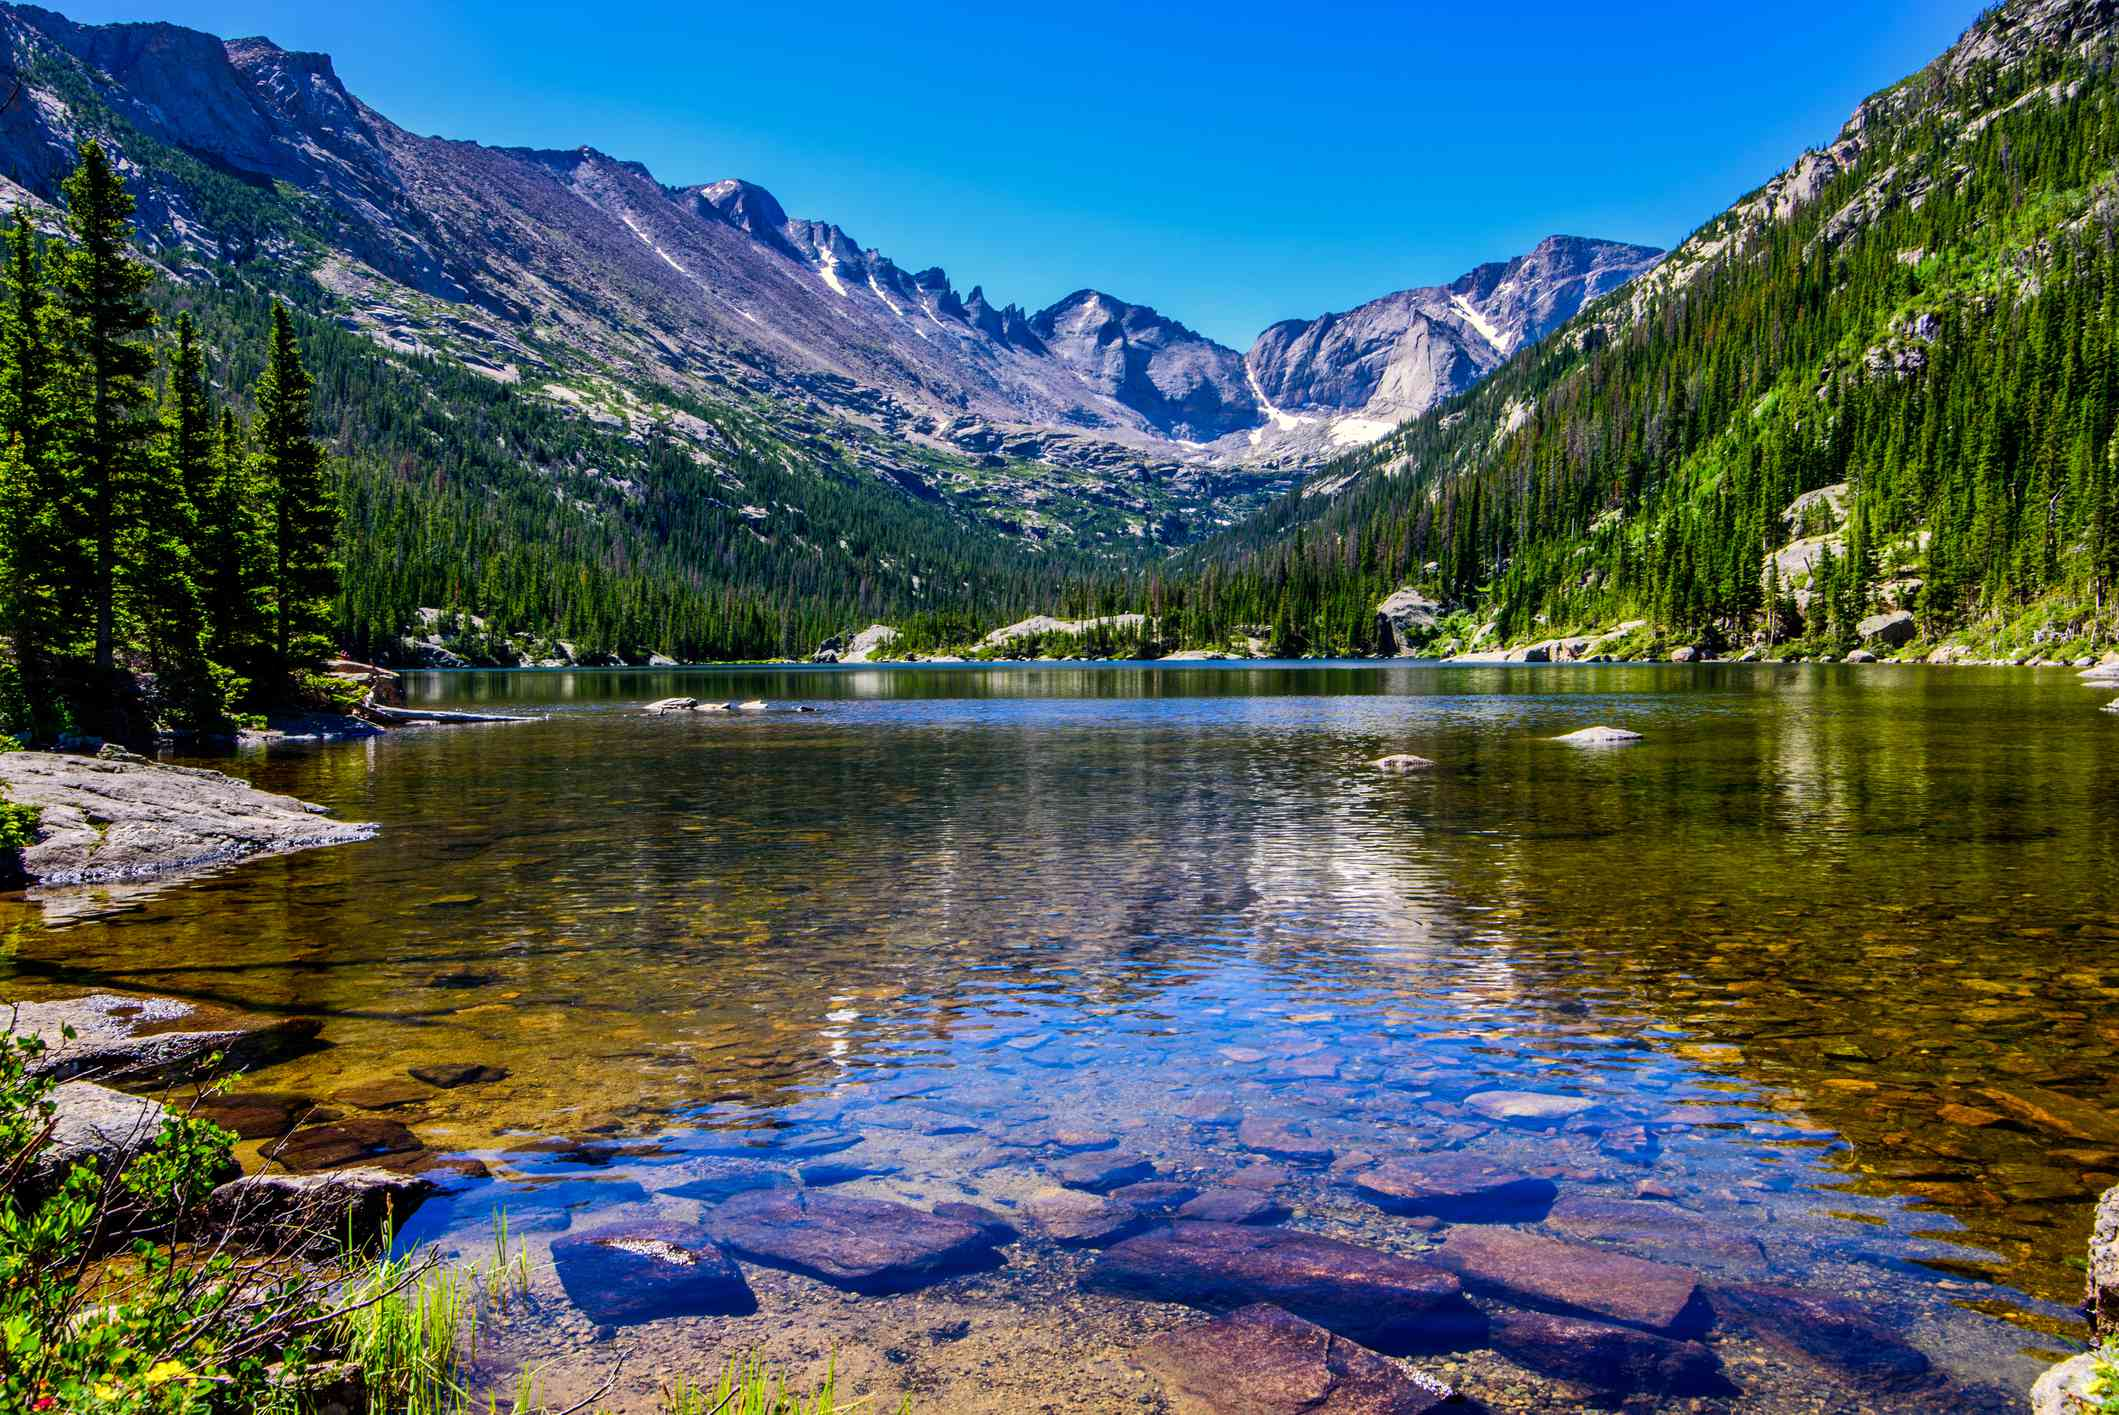 clear alpine lake surrounded by evergreen trees